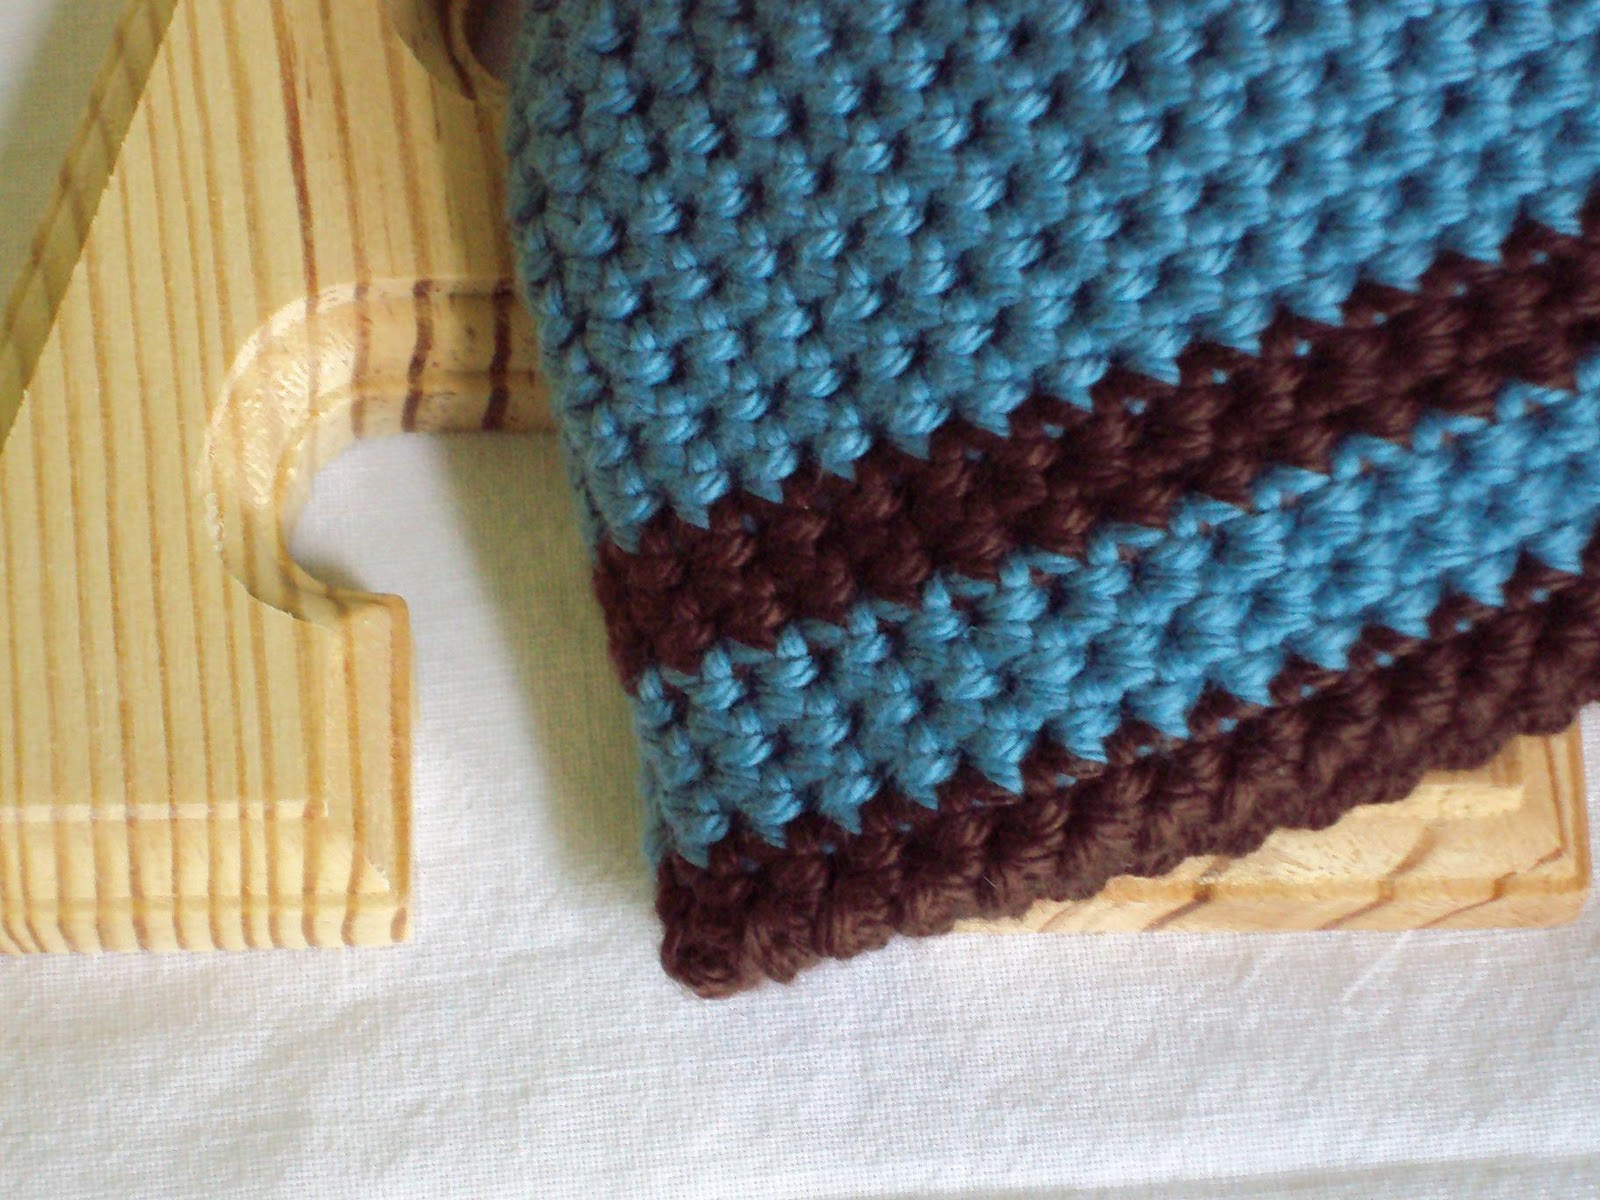 crafters niche: Crocheted Baby Hat